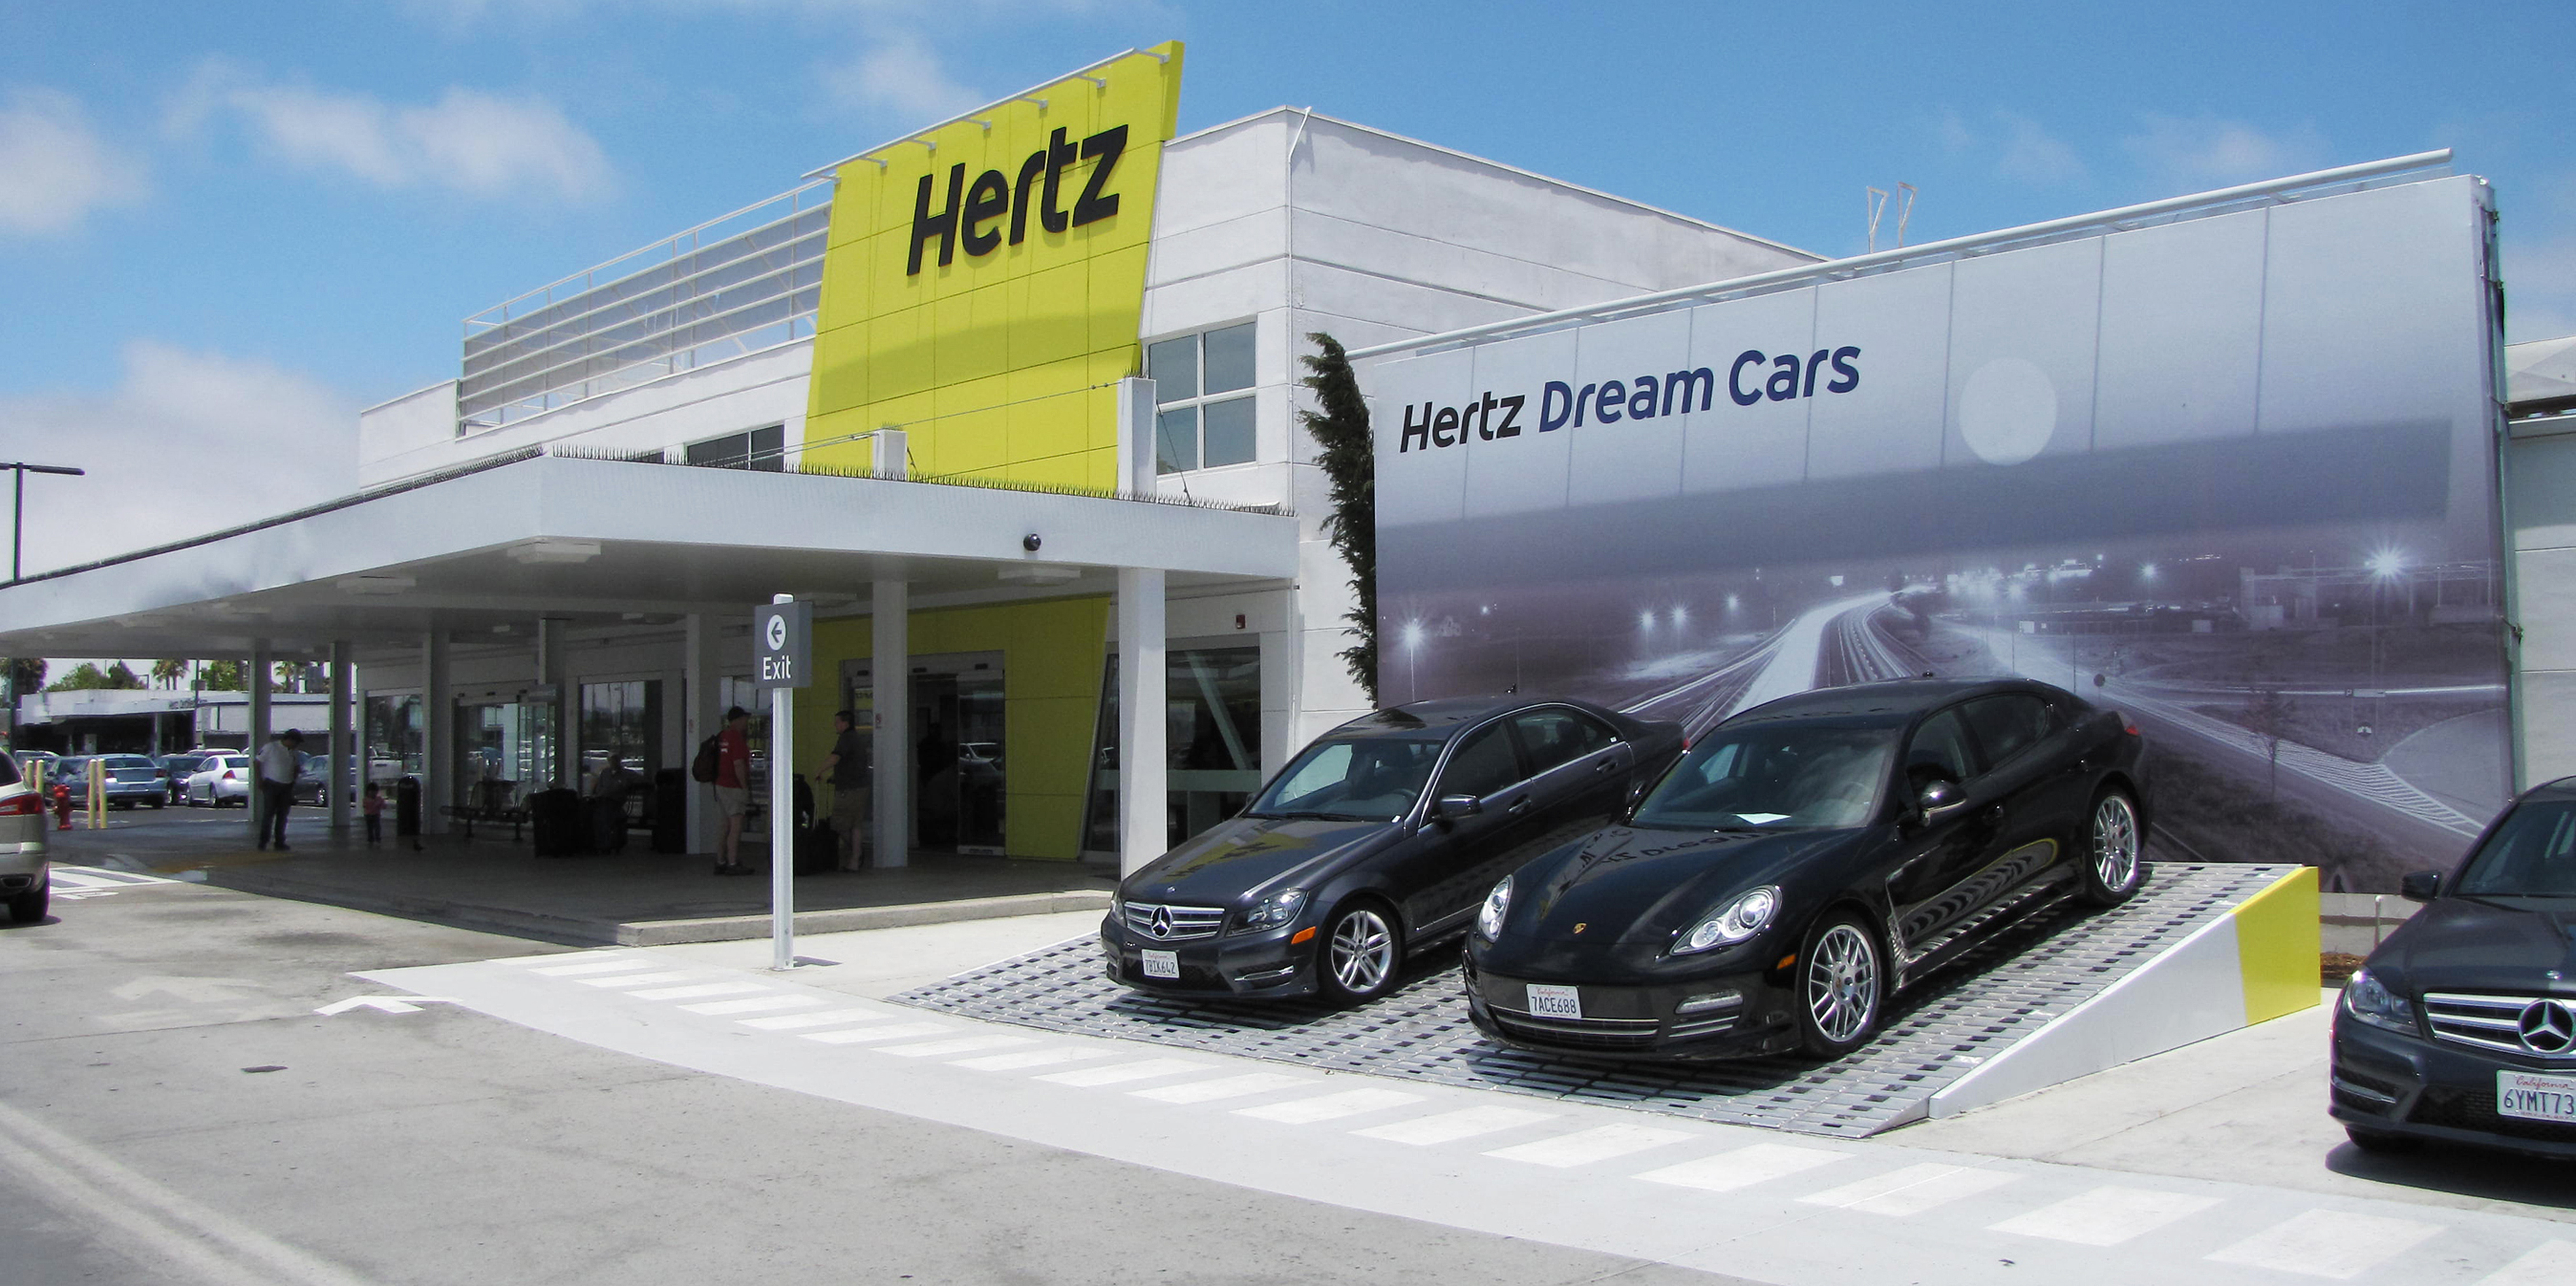 Hertz in SAN DIEGO, California